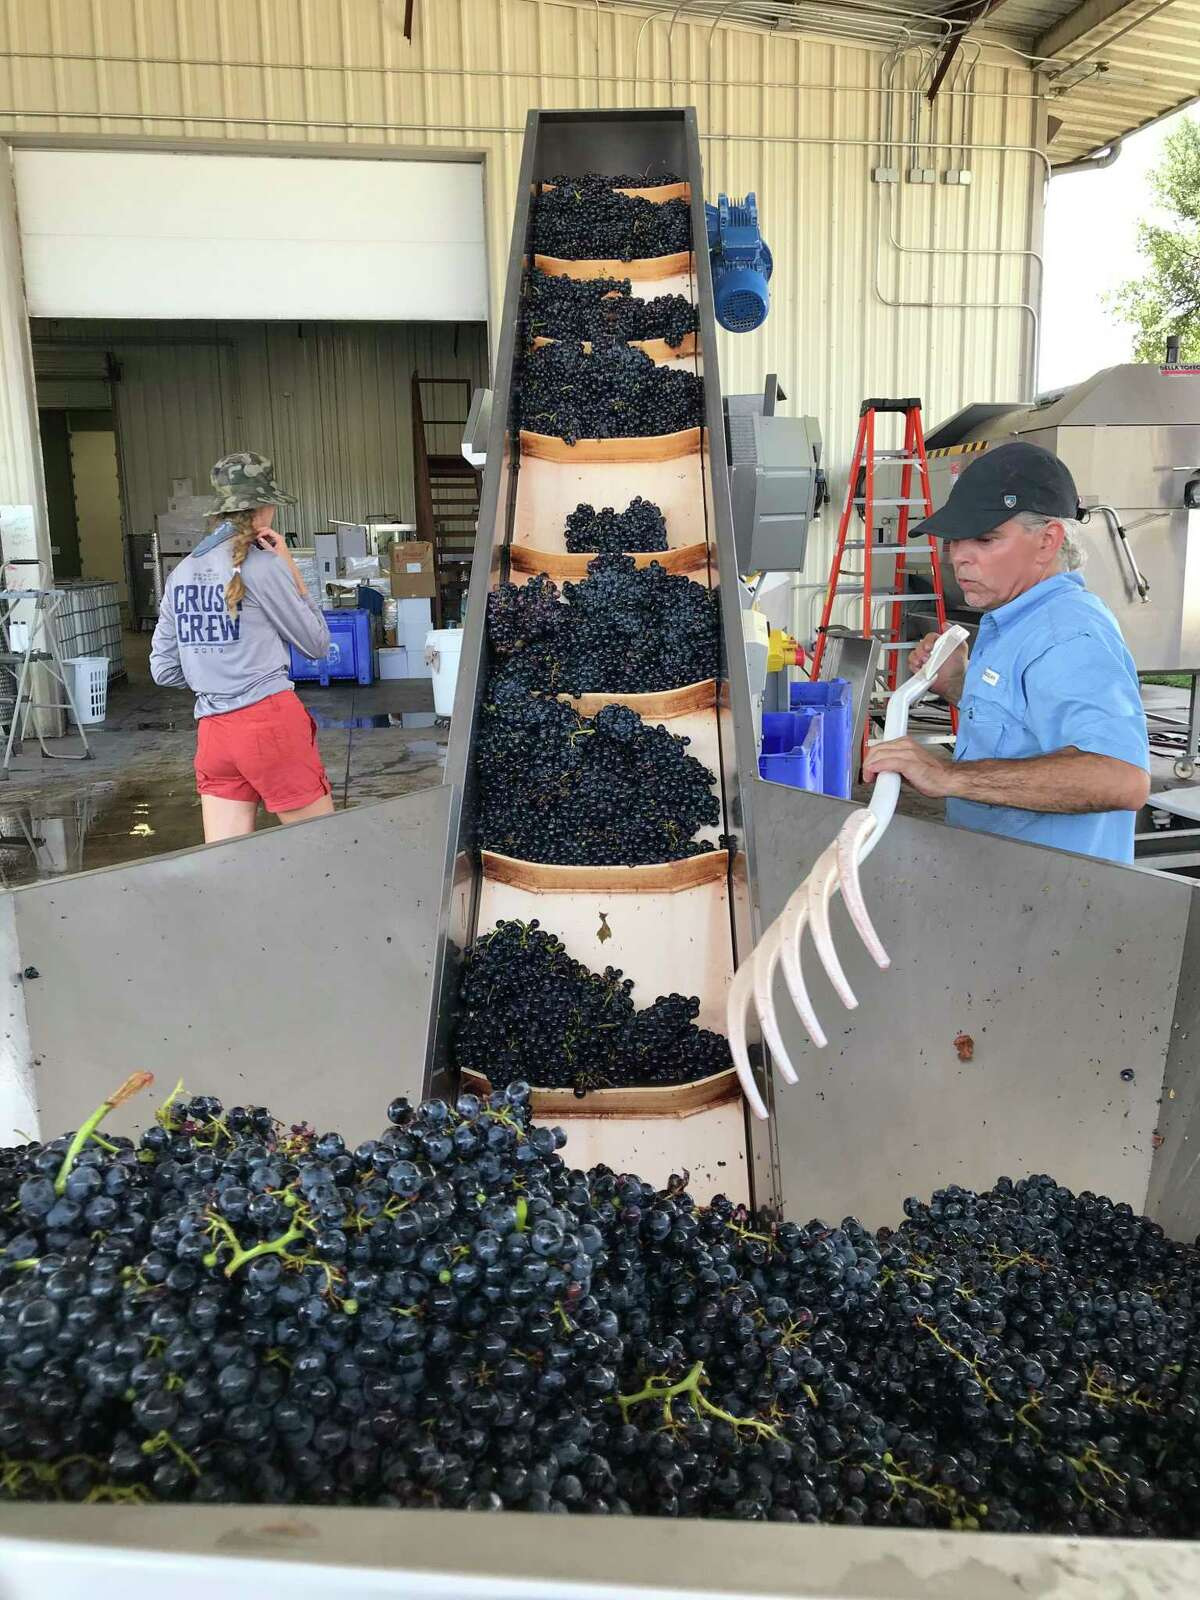 Destemming Tempranillo grapes at Bending Branch Winery in Comfort, Texas.